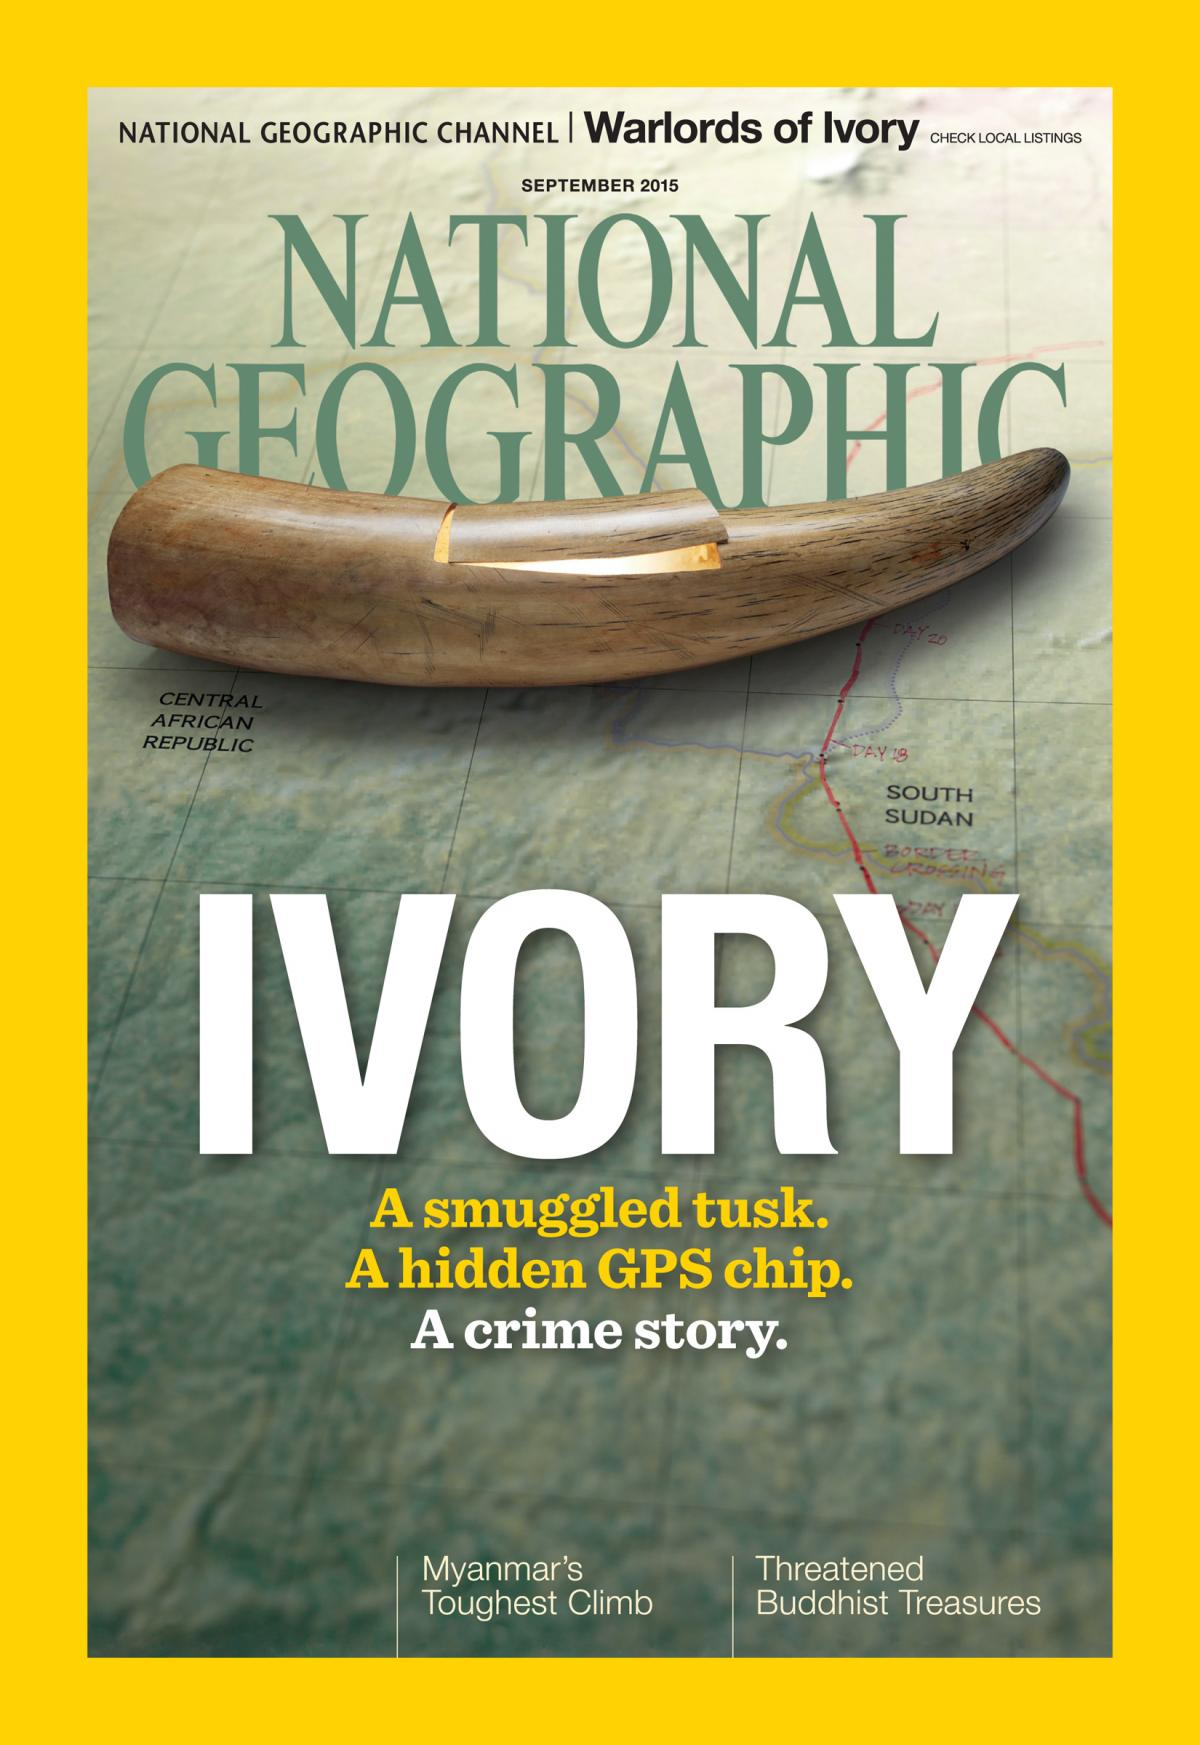 Journalist Bryan Christy traces the path of Africa's ivory smugglers in the cover story of National Geographic Magazine's September 2015 issue.